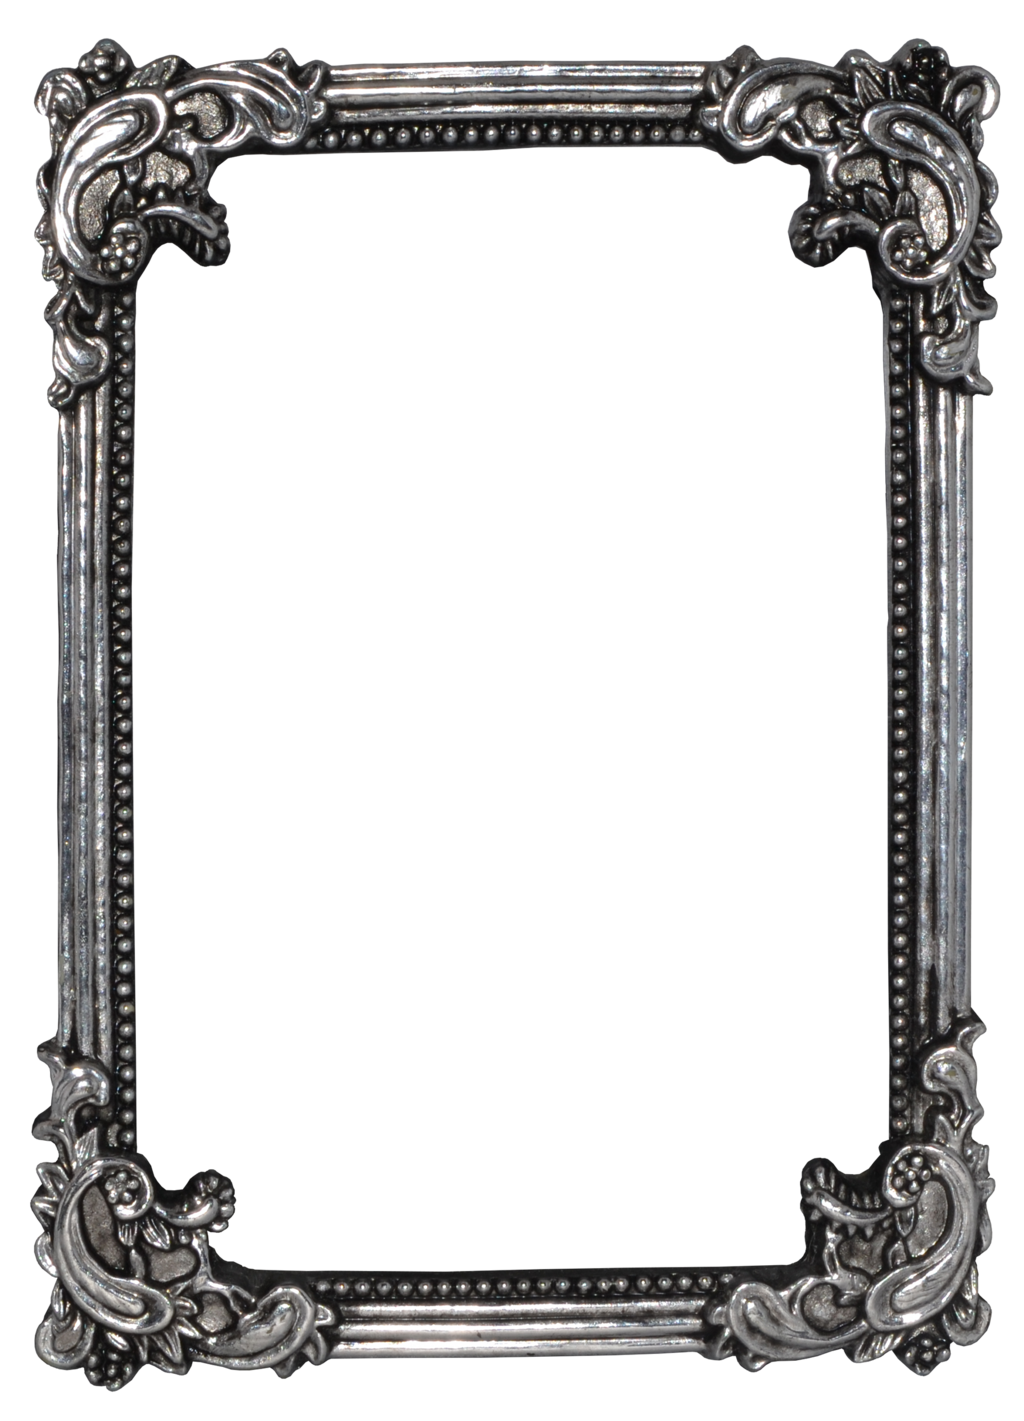 Download PNG image - Vintage Frame Png - PNG Frames For Pictures